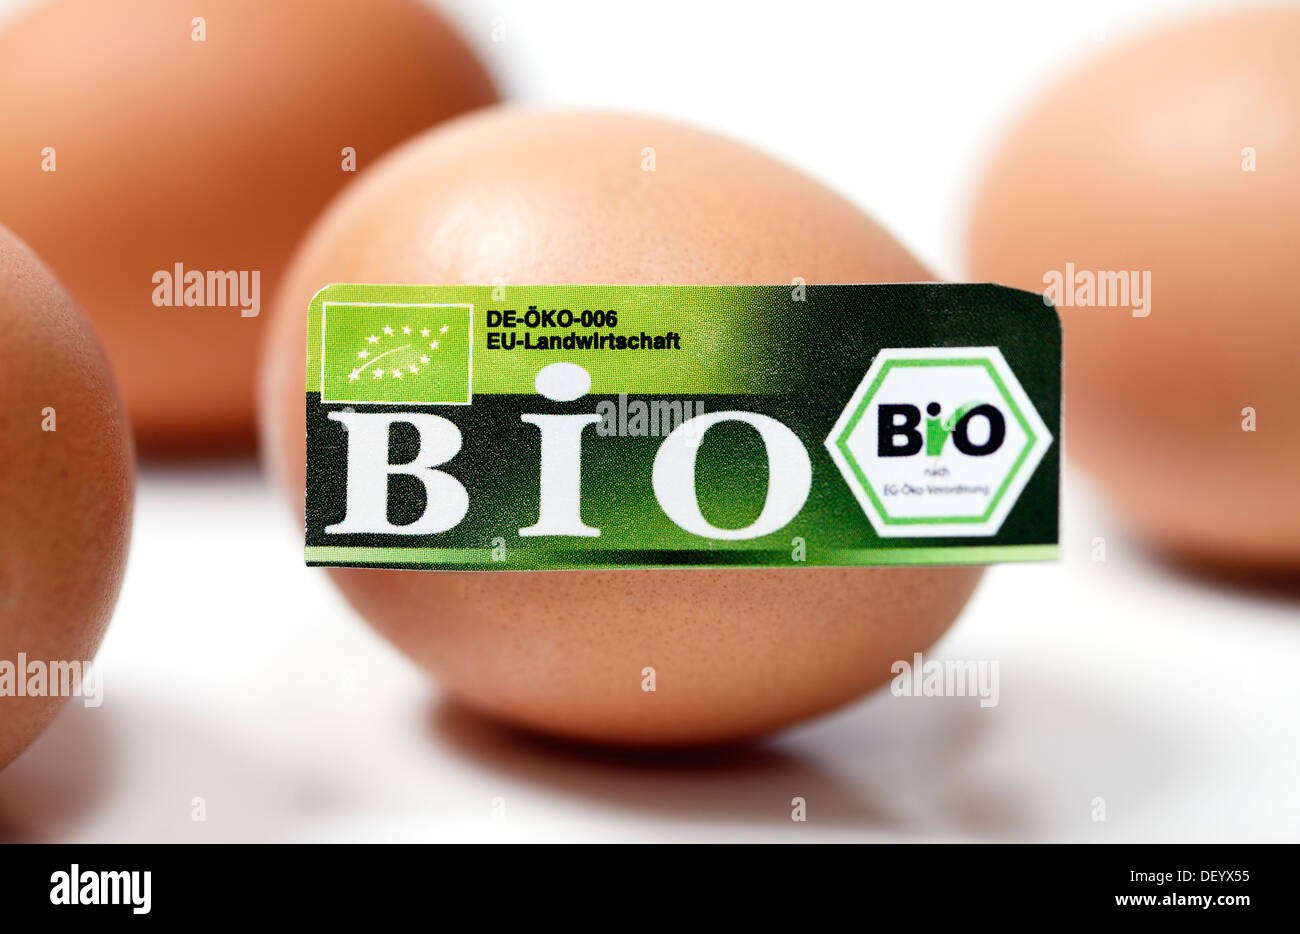 Hen's eggs with organic seal, symbolic image, Germany Stock Photo